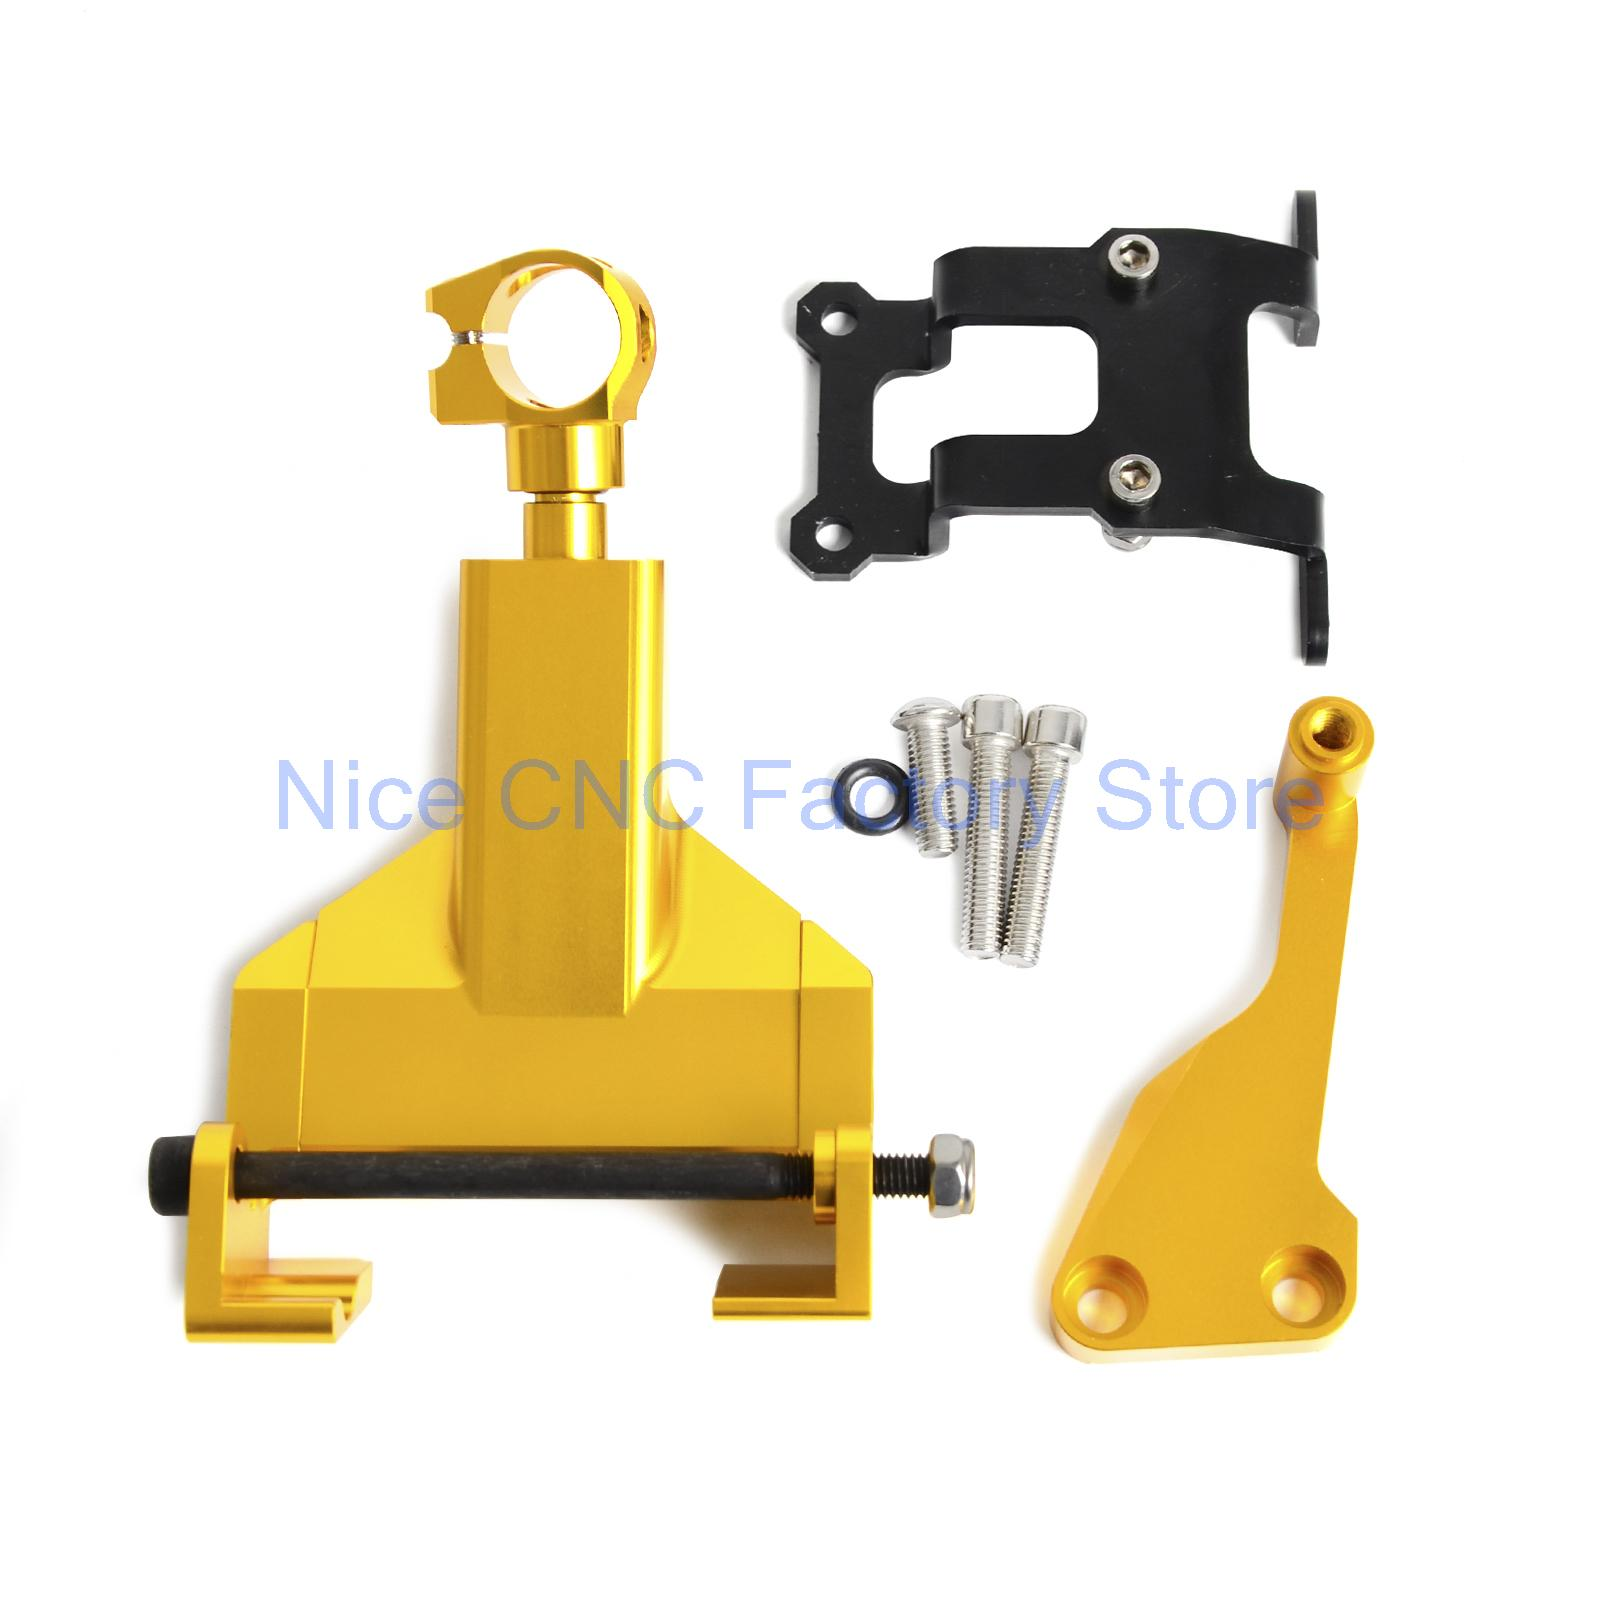 Gold Motorcycle Stablizer Damper Mounting Bracket Kit For Yamaha MT-07 MT07 MOTO CAGE 2014 2015 2016 motorcycle cnc aluminum windscreen windshield mounting bracket for yamaha mt07 mt 07 2014 2015 2016 red new style with logo